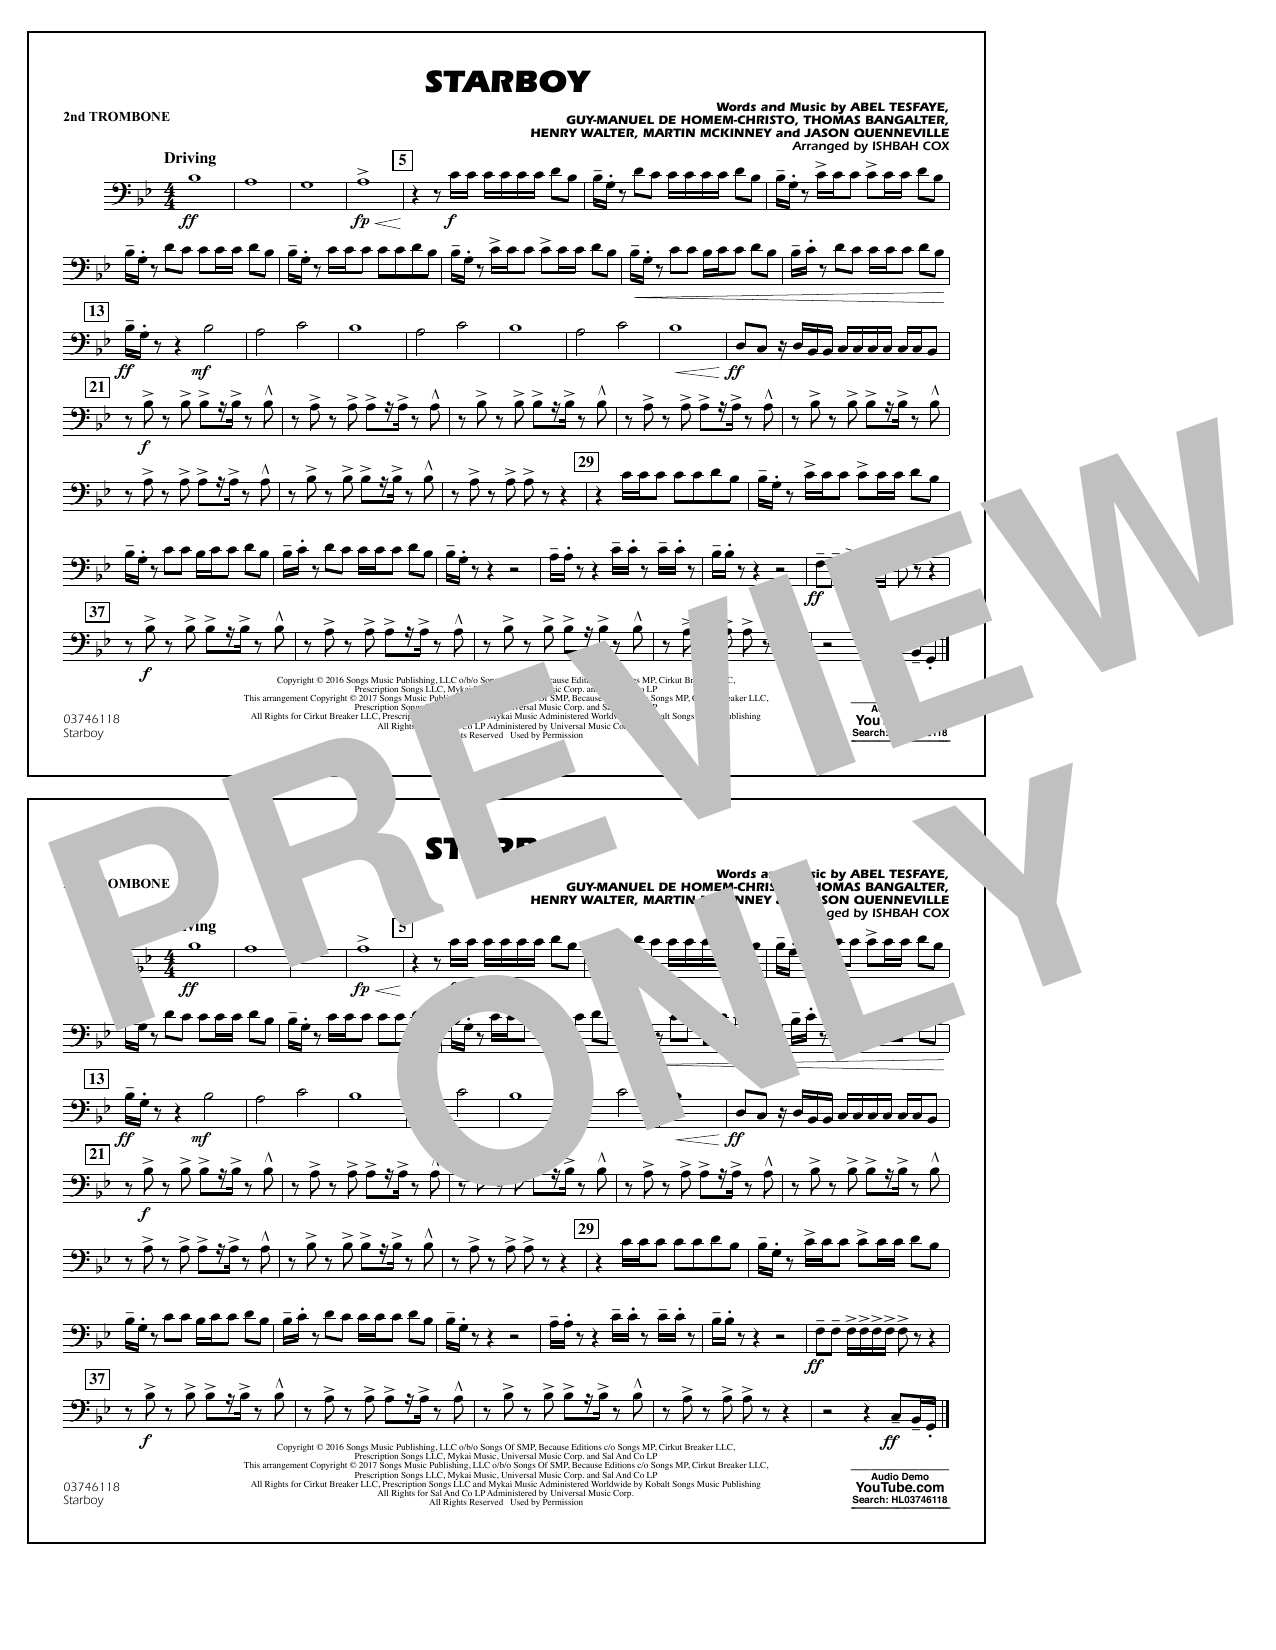 Starboy - 2nd Trombone Sheet Music